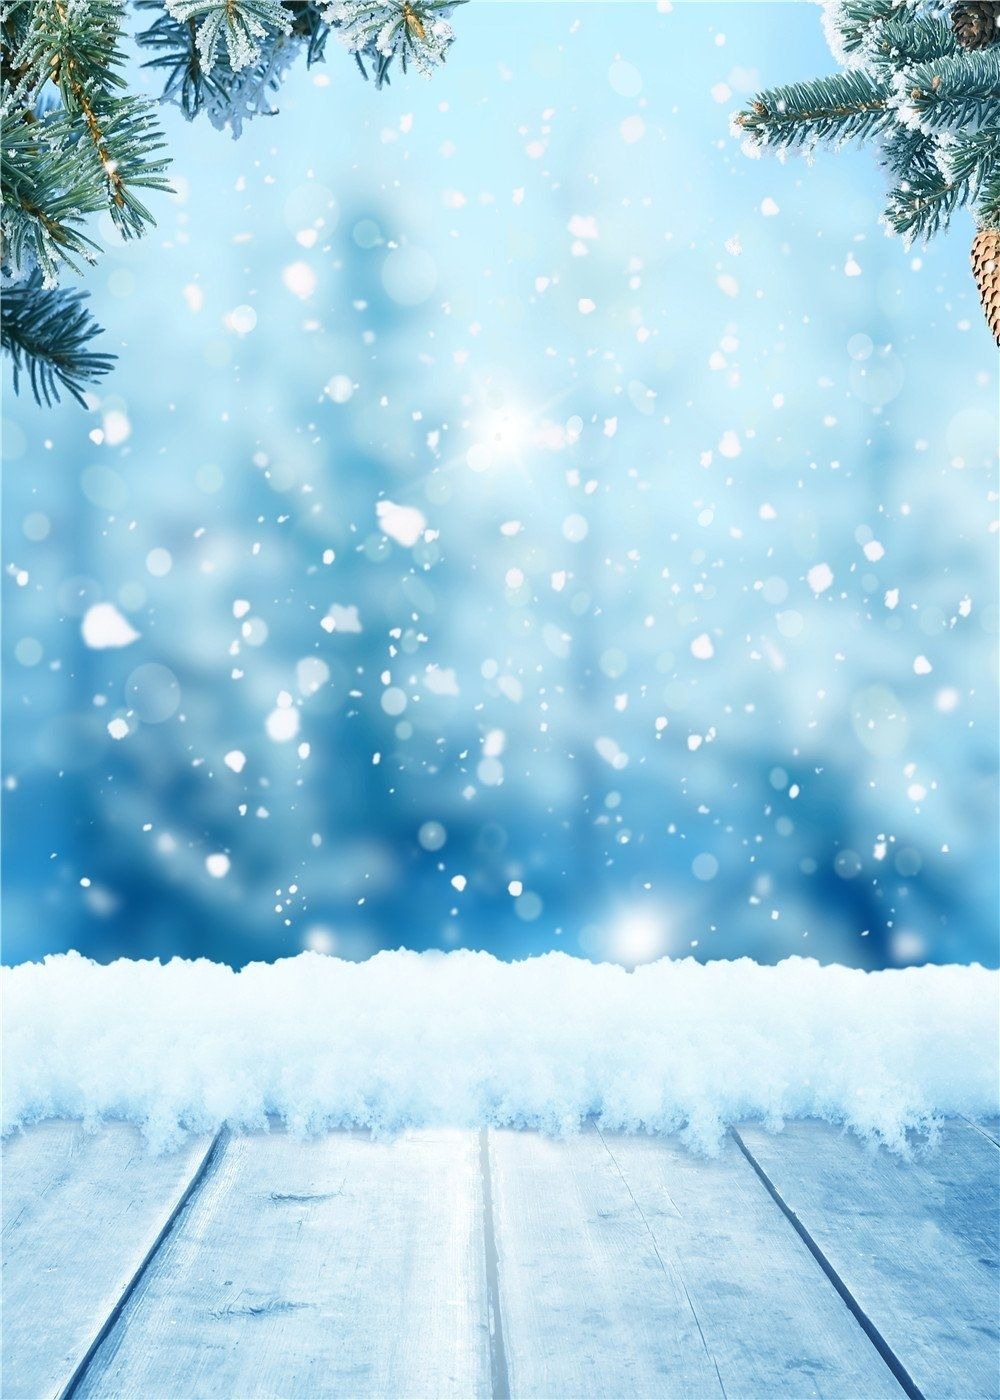 Winter Photography Backdrops 5x7ft Wood Floor Background Snowflakes Backdrop For Photo Backdrop Props Winter Backdrops Photography Backdrops Photo Backgrounds